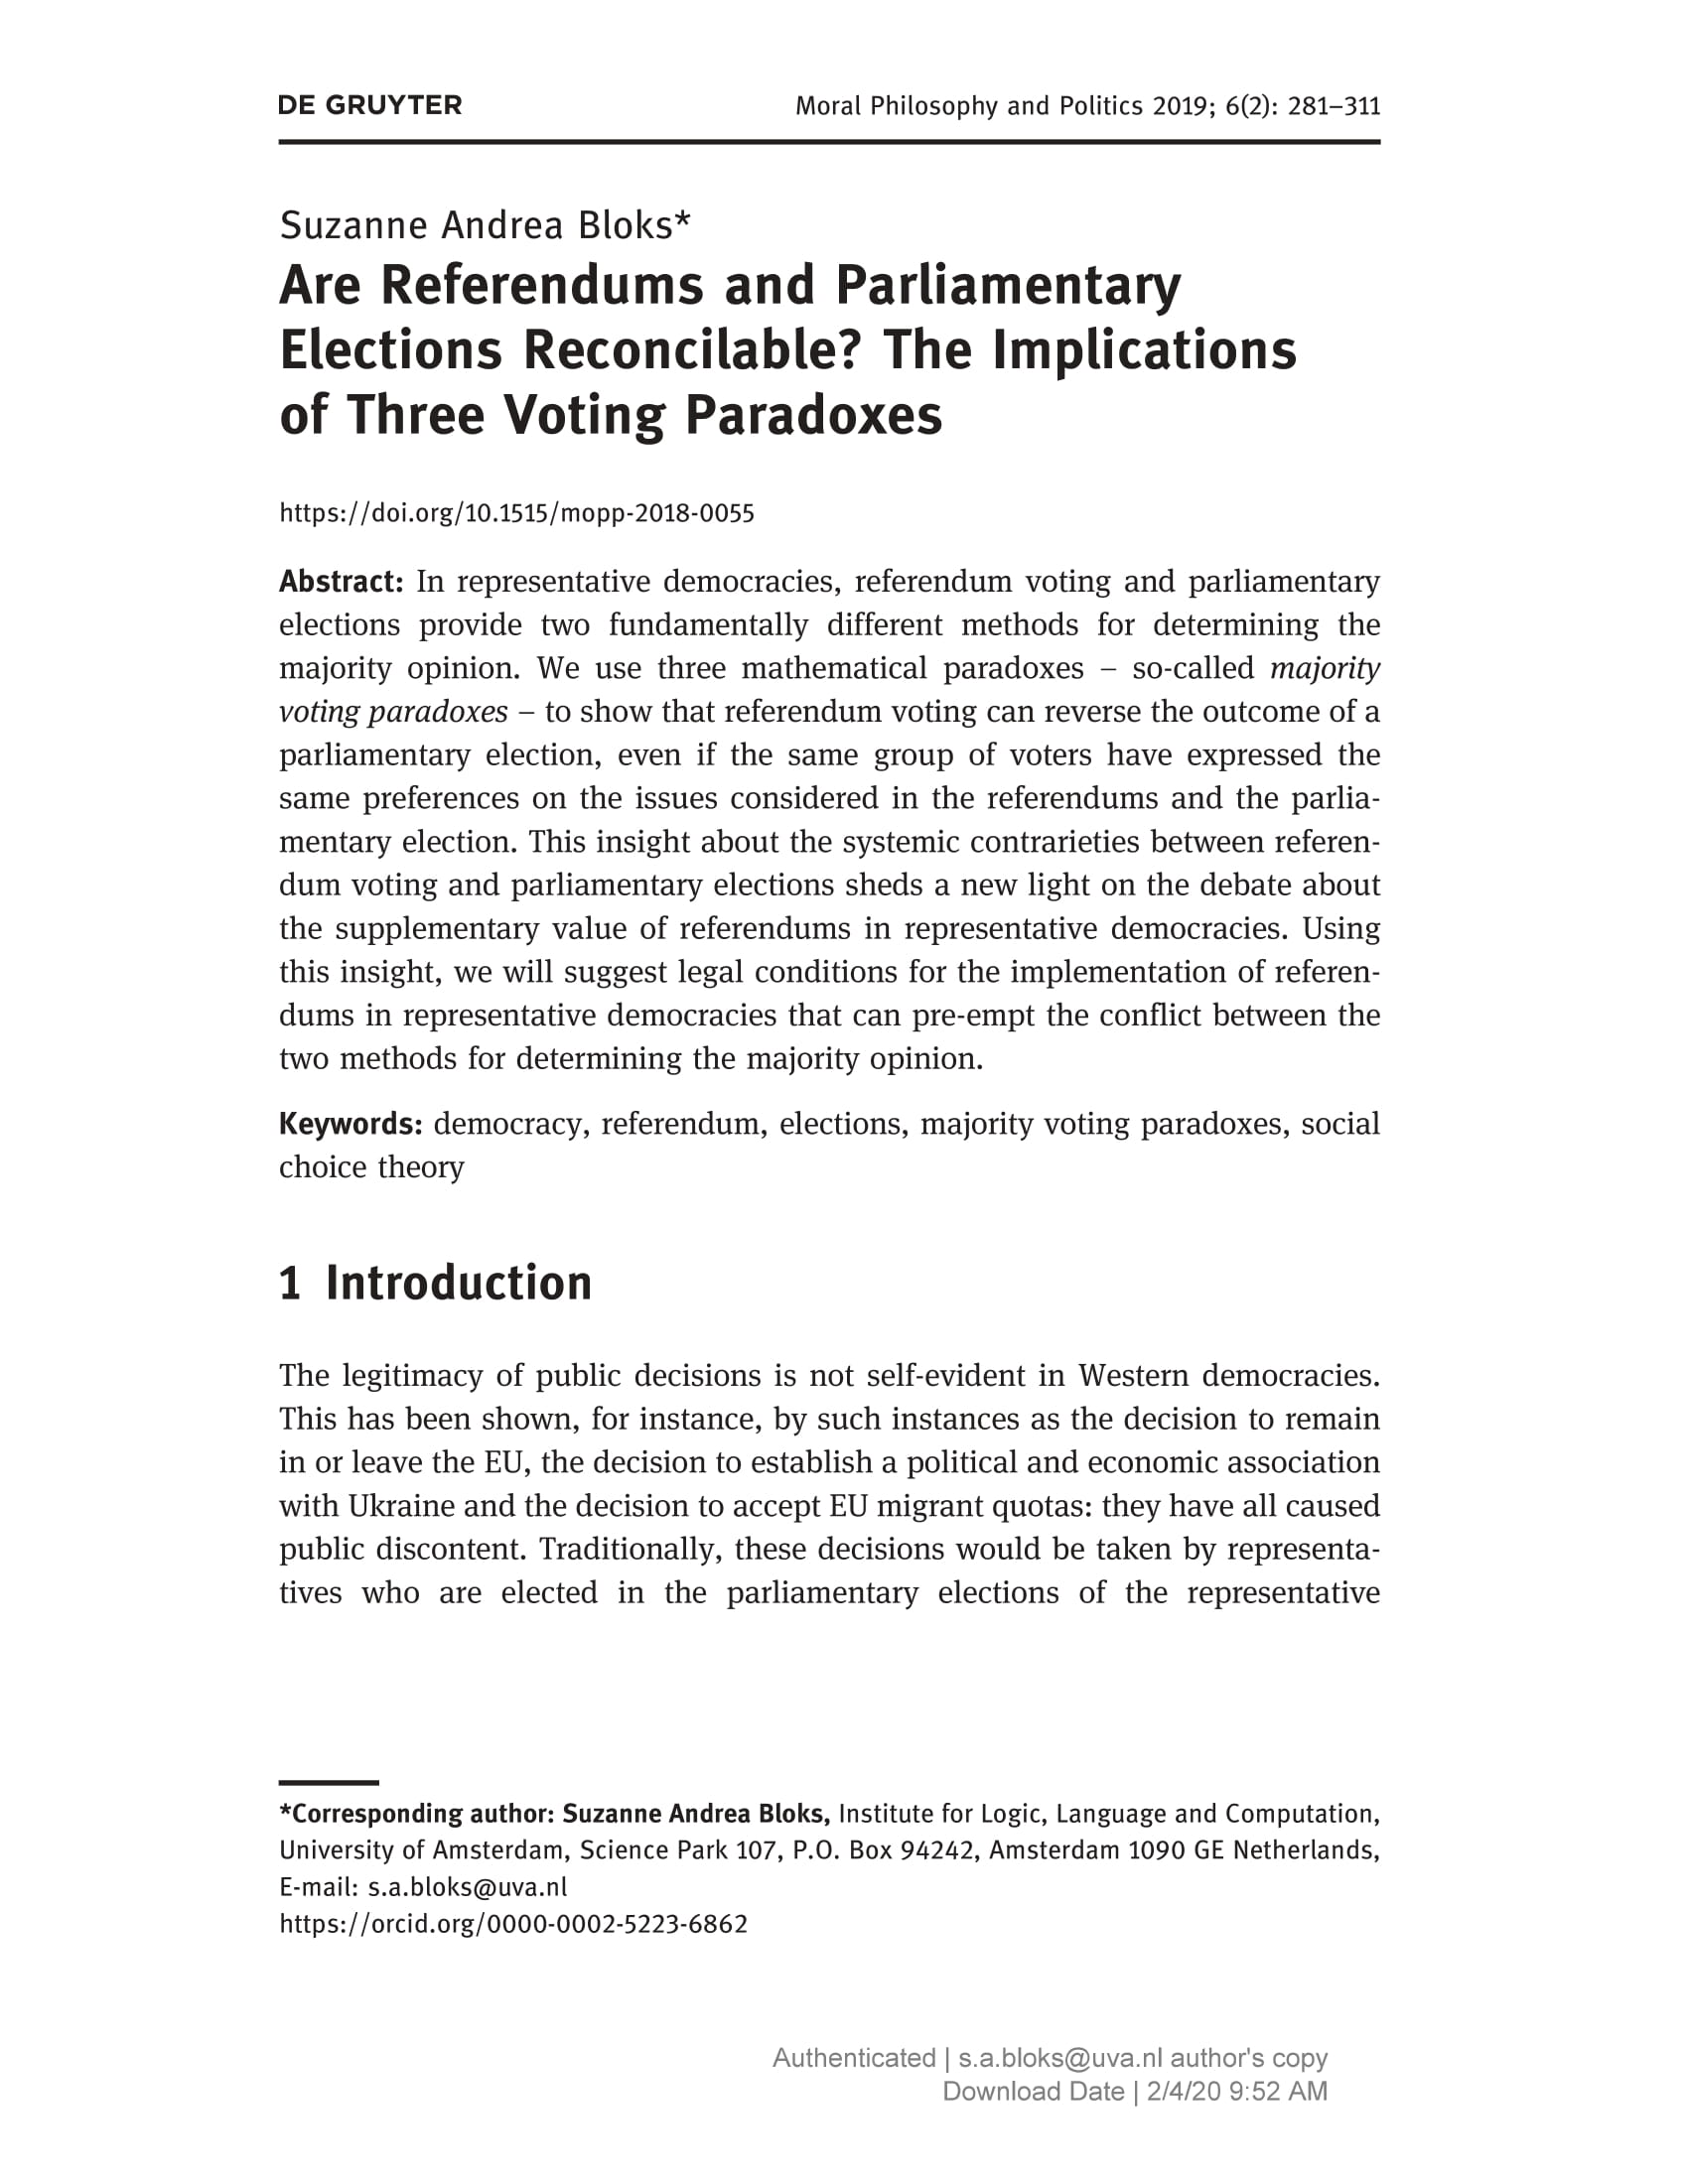 Are Referendums and Parliamentary Elections Reconcilable? The Implications of Three Voting Paradoxes.